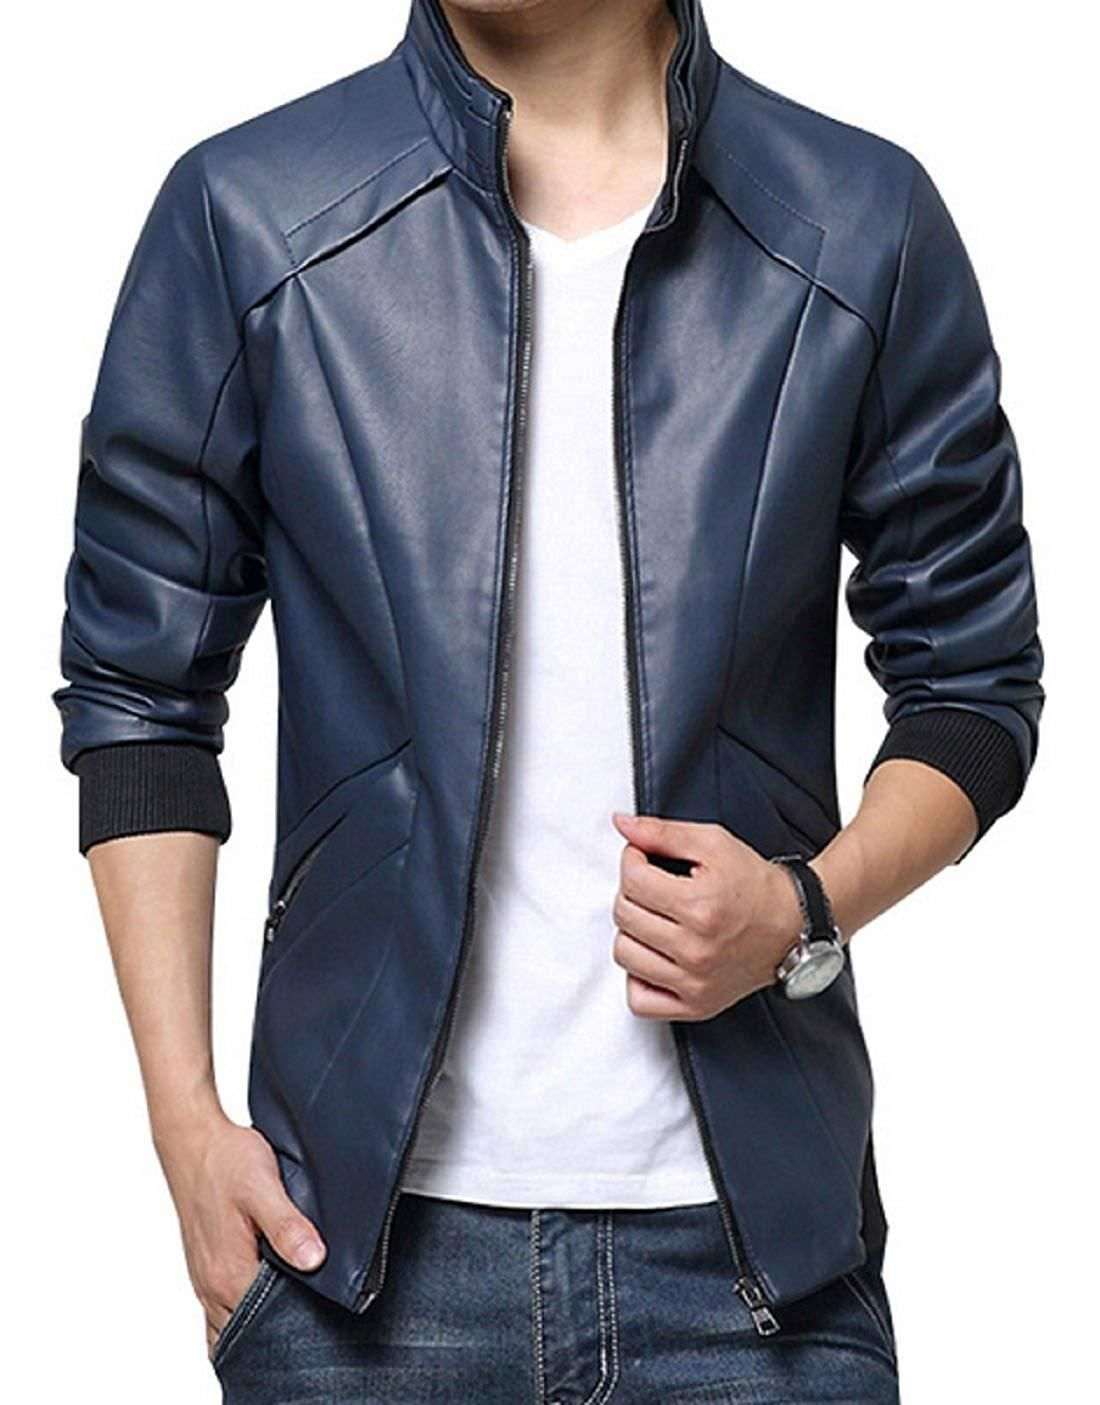 b9cc73e0c7b Men s Leather Jacket Stand Up Collar Slim Fit Outdoor Jacket –  Valentafashion